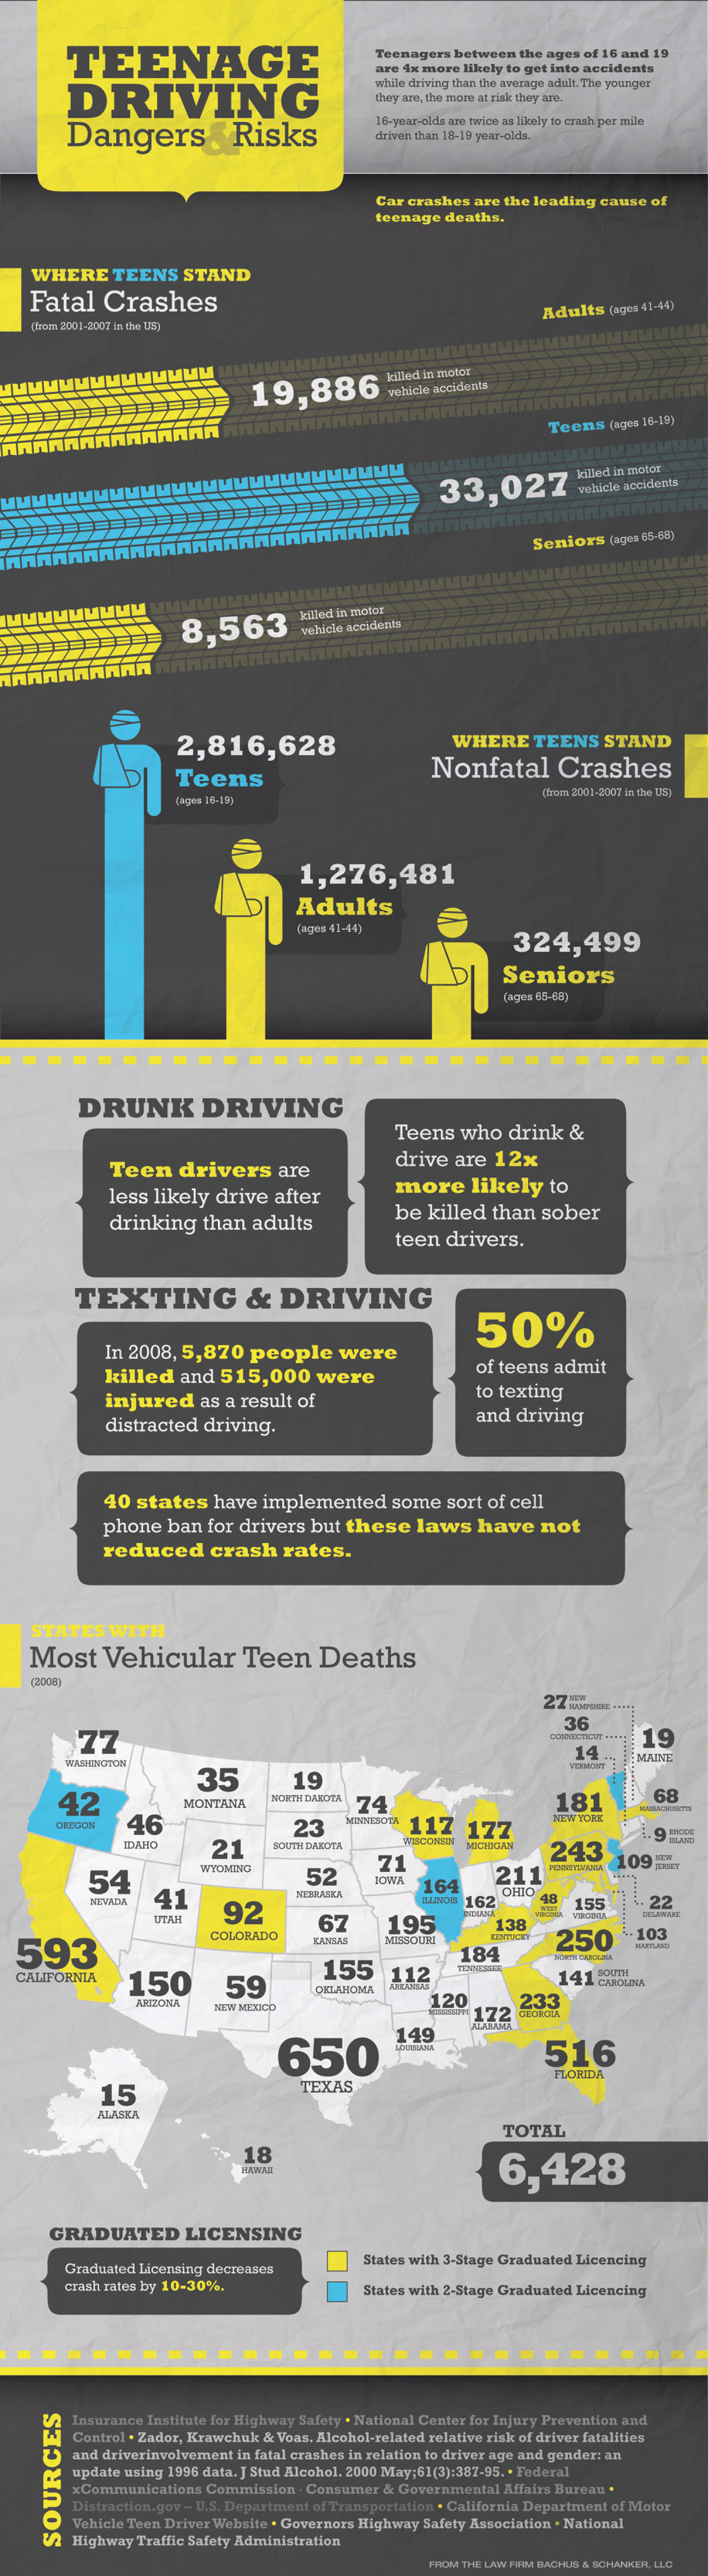 Dangers of teen driving